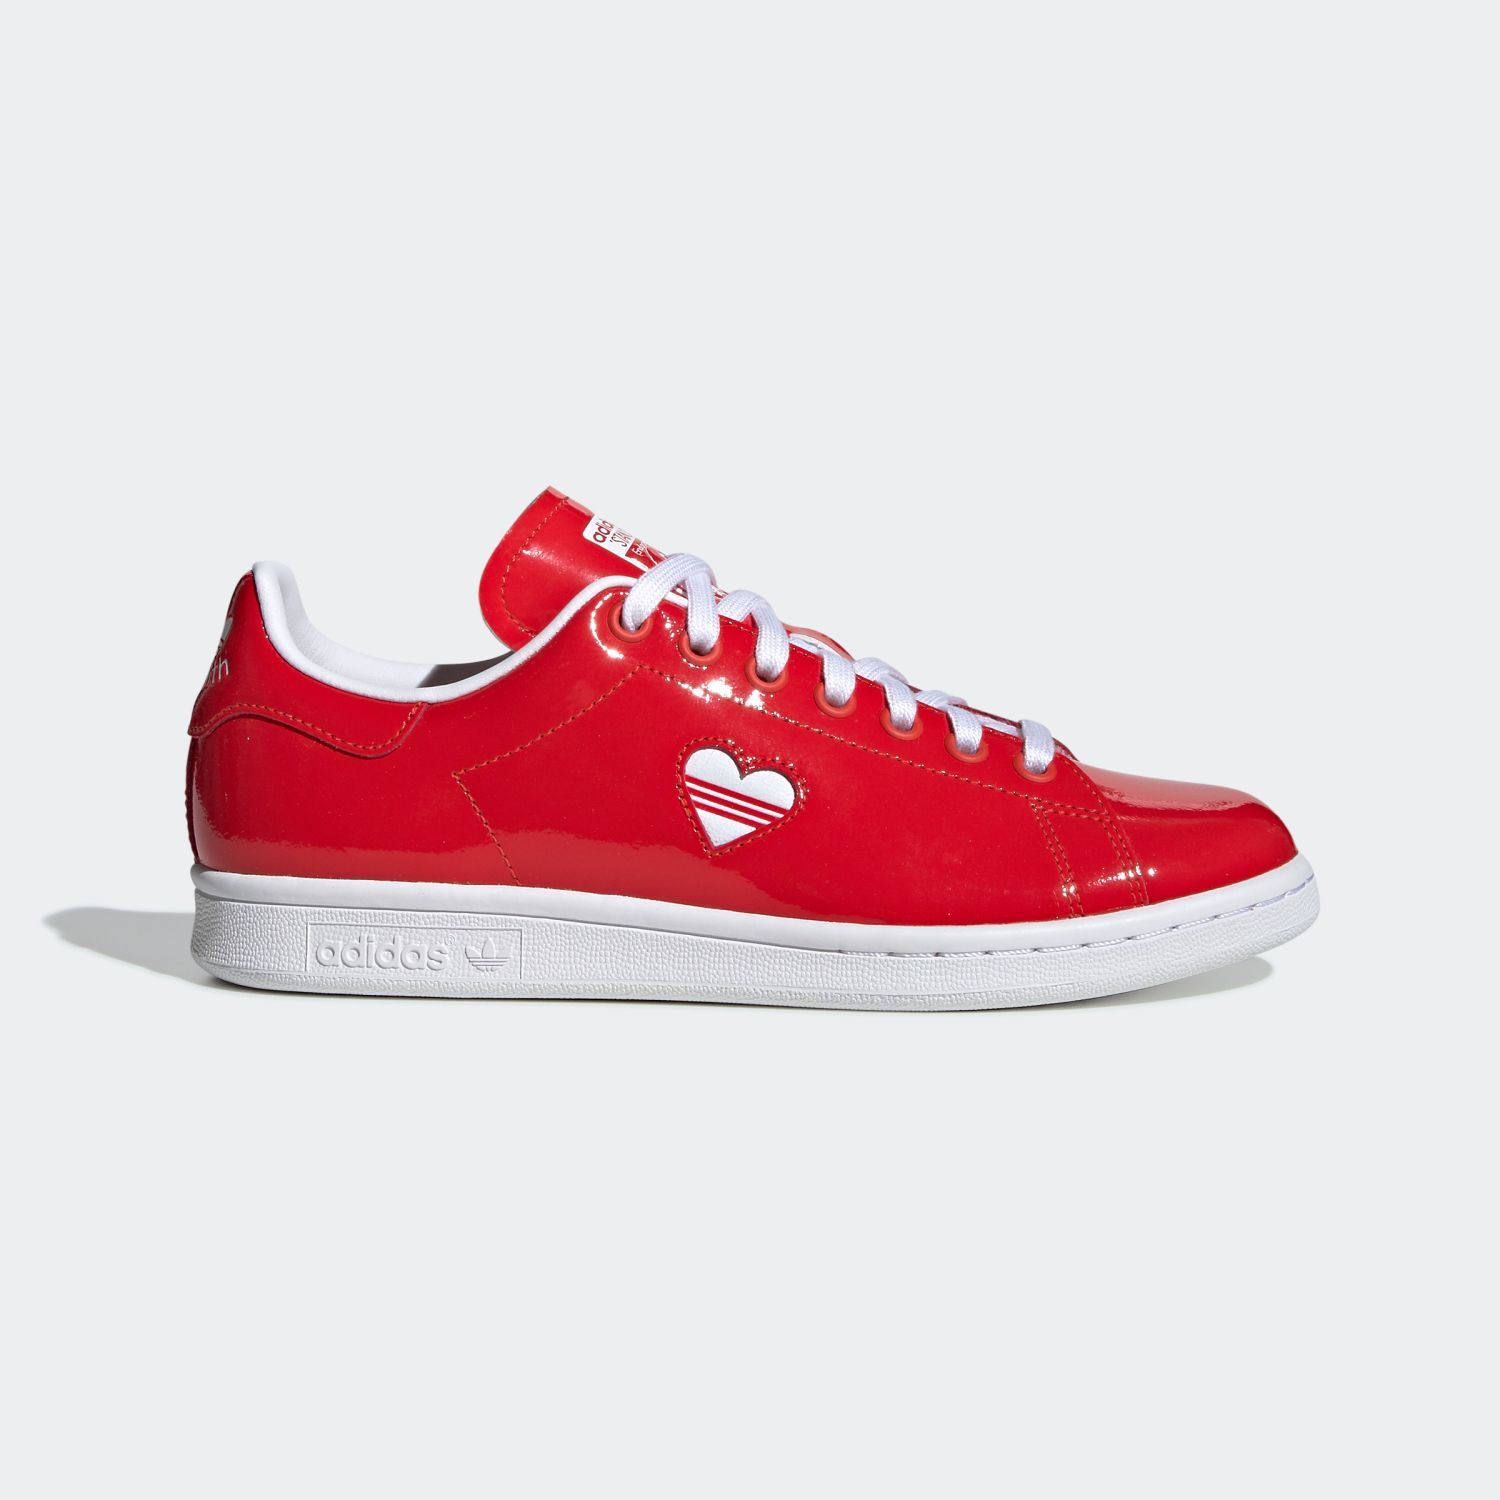 Stan Smith Valentines Day 2019 Red (ウィメンズ)